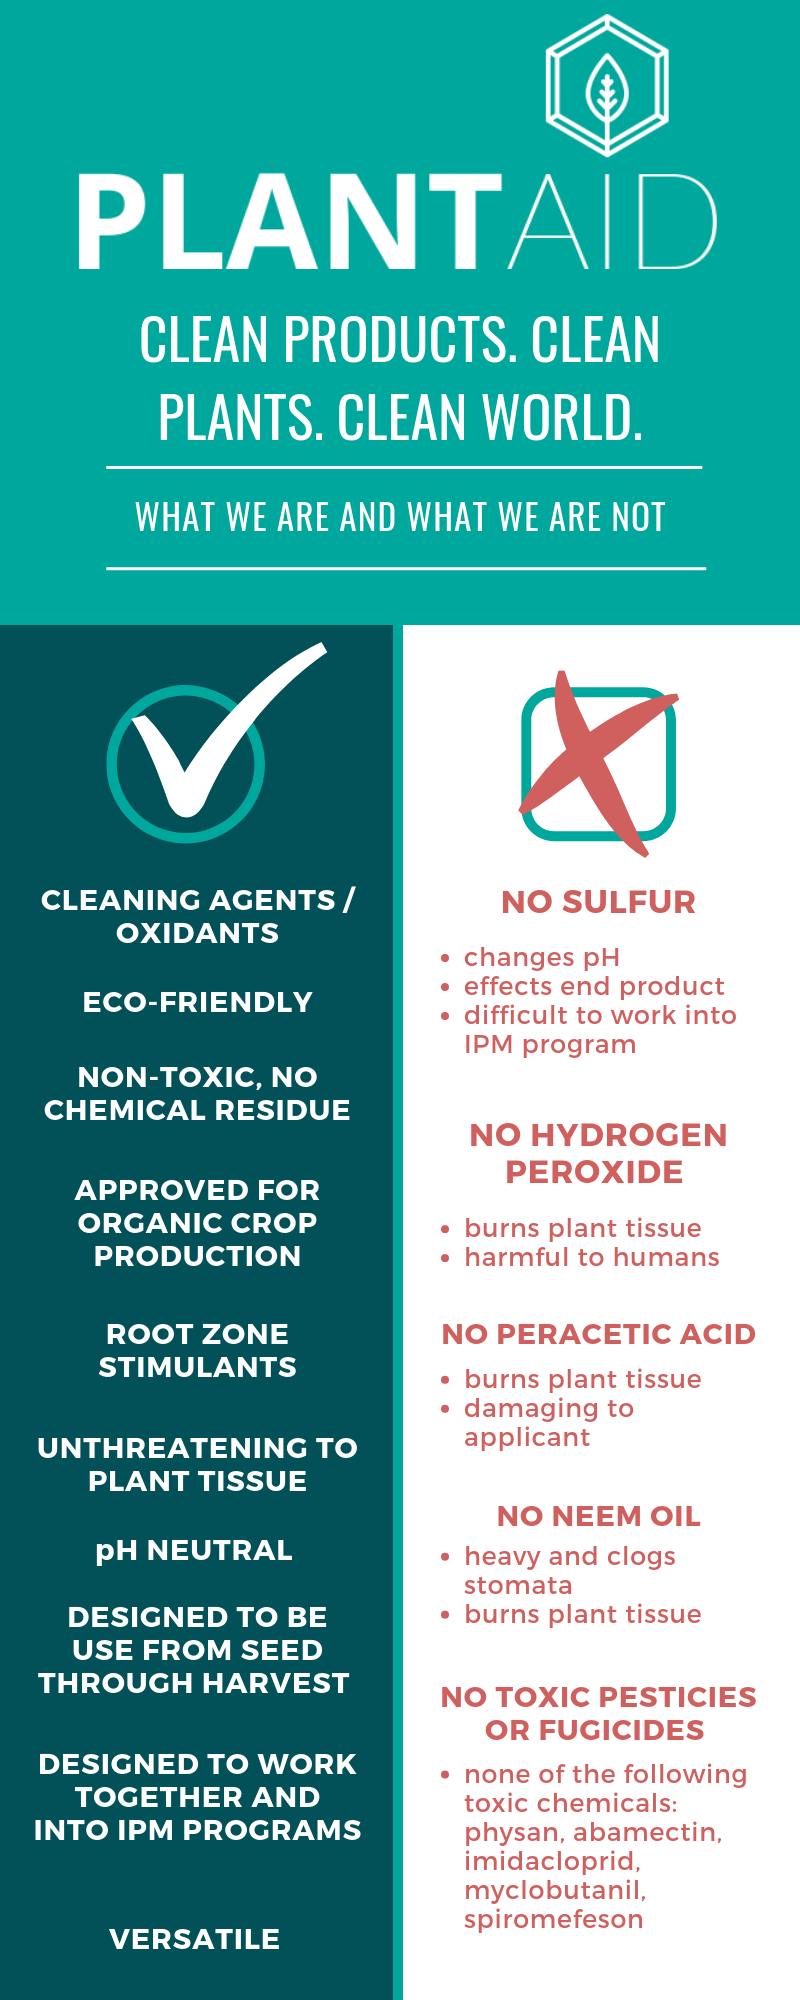 What Plant Aid Products Are and What They Are Not